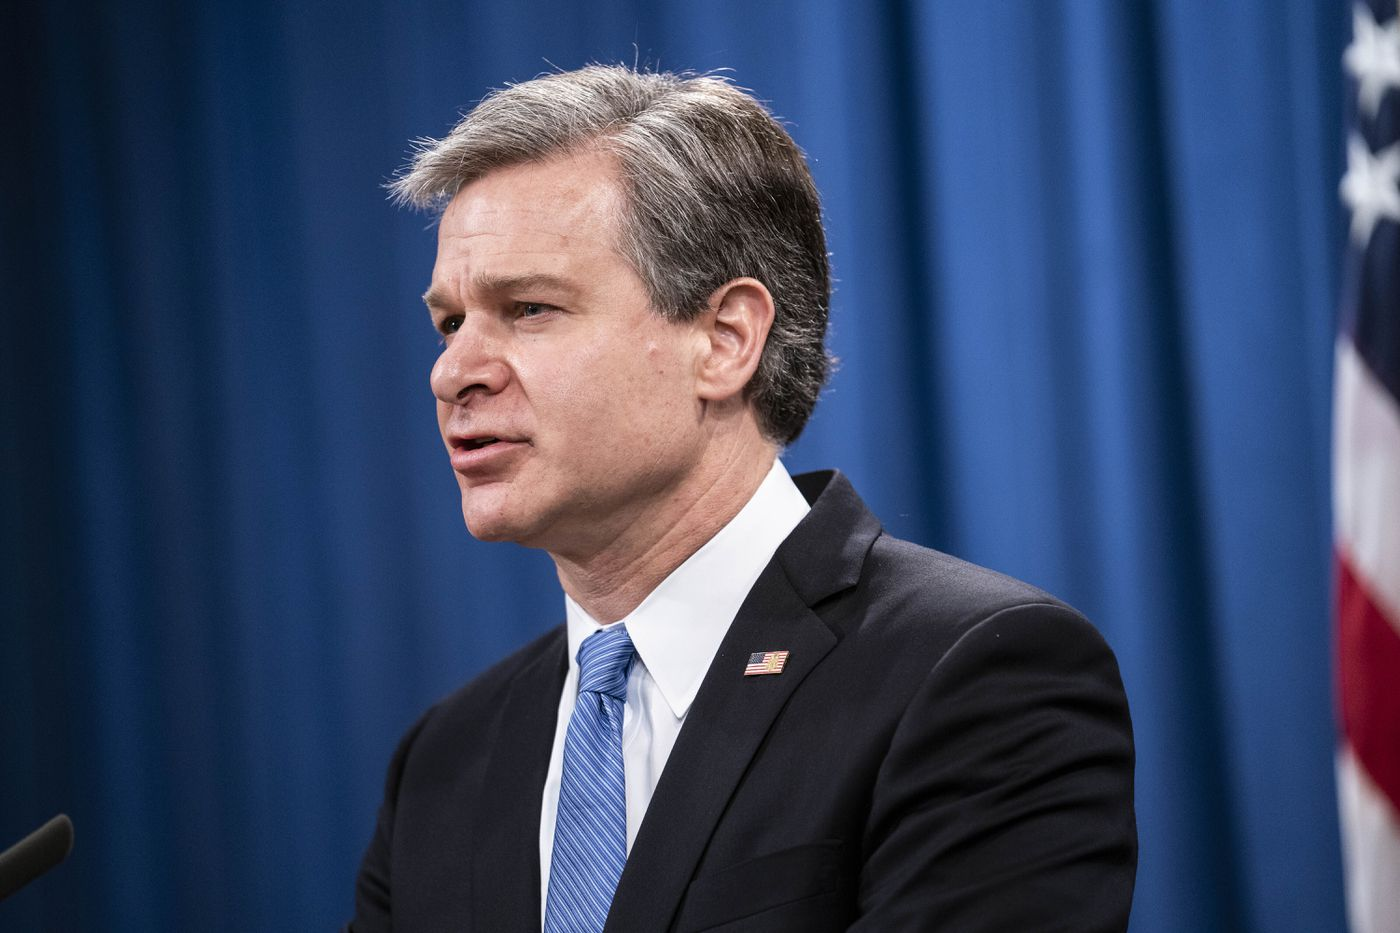 FBI chief to face questions about extremism, Capitol riot